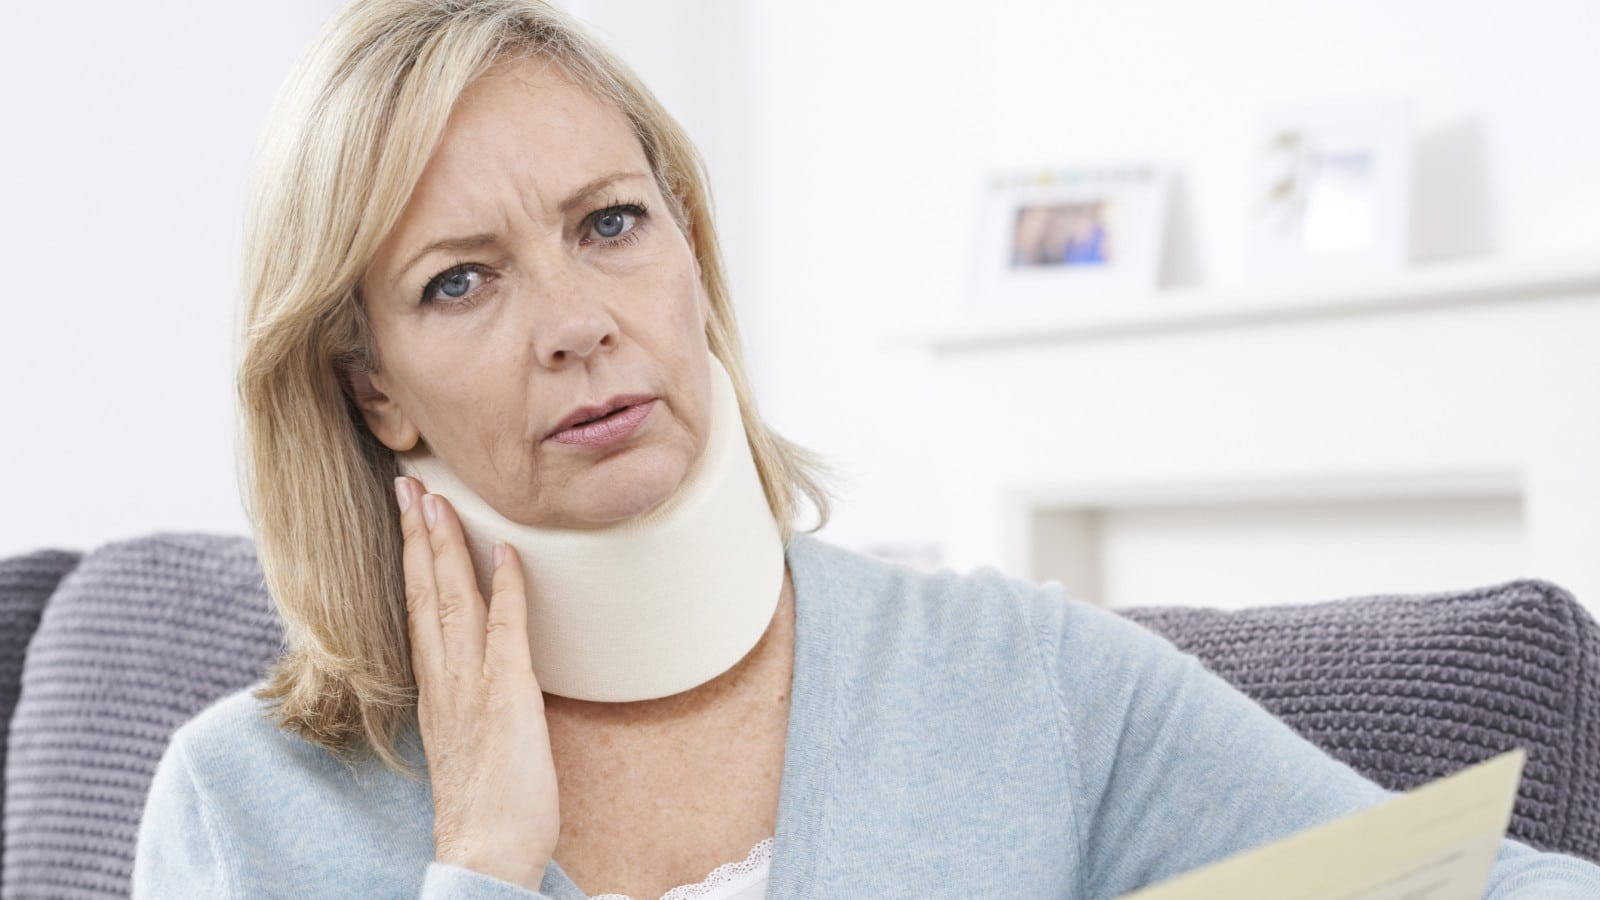 Mature Woman Wearing A Neck Brace Stock Photo